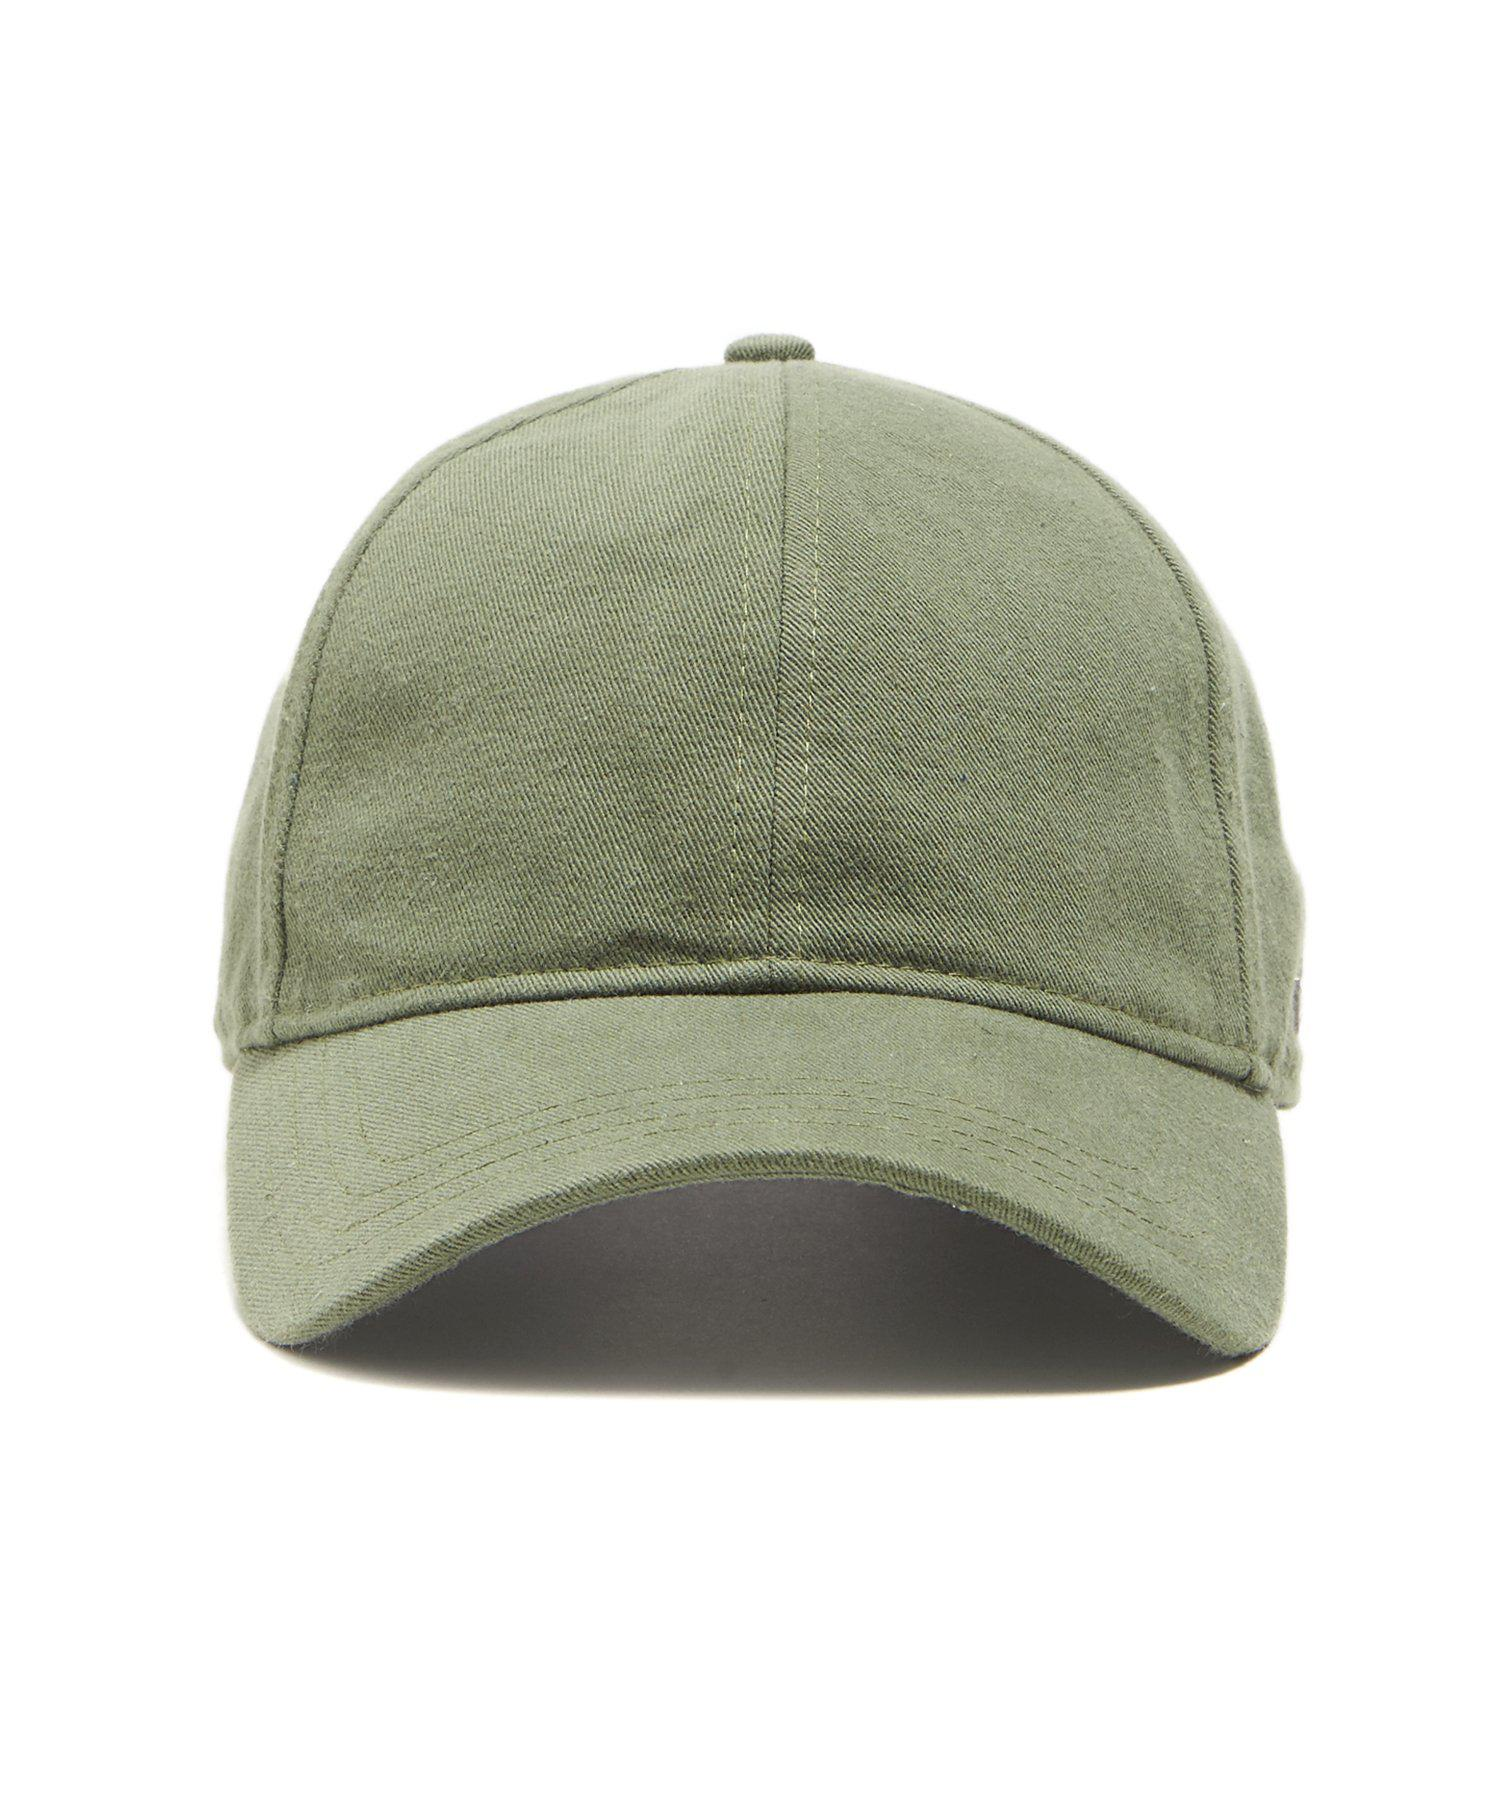 Lyst - NEW ERA HATS Dad Hat In Olive Selvedge Chino in Green for Men fe9c12b3c29